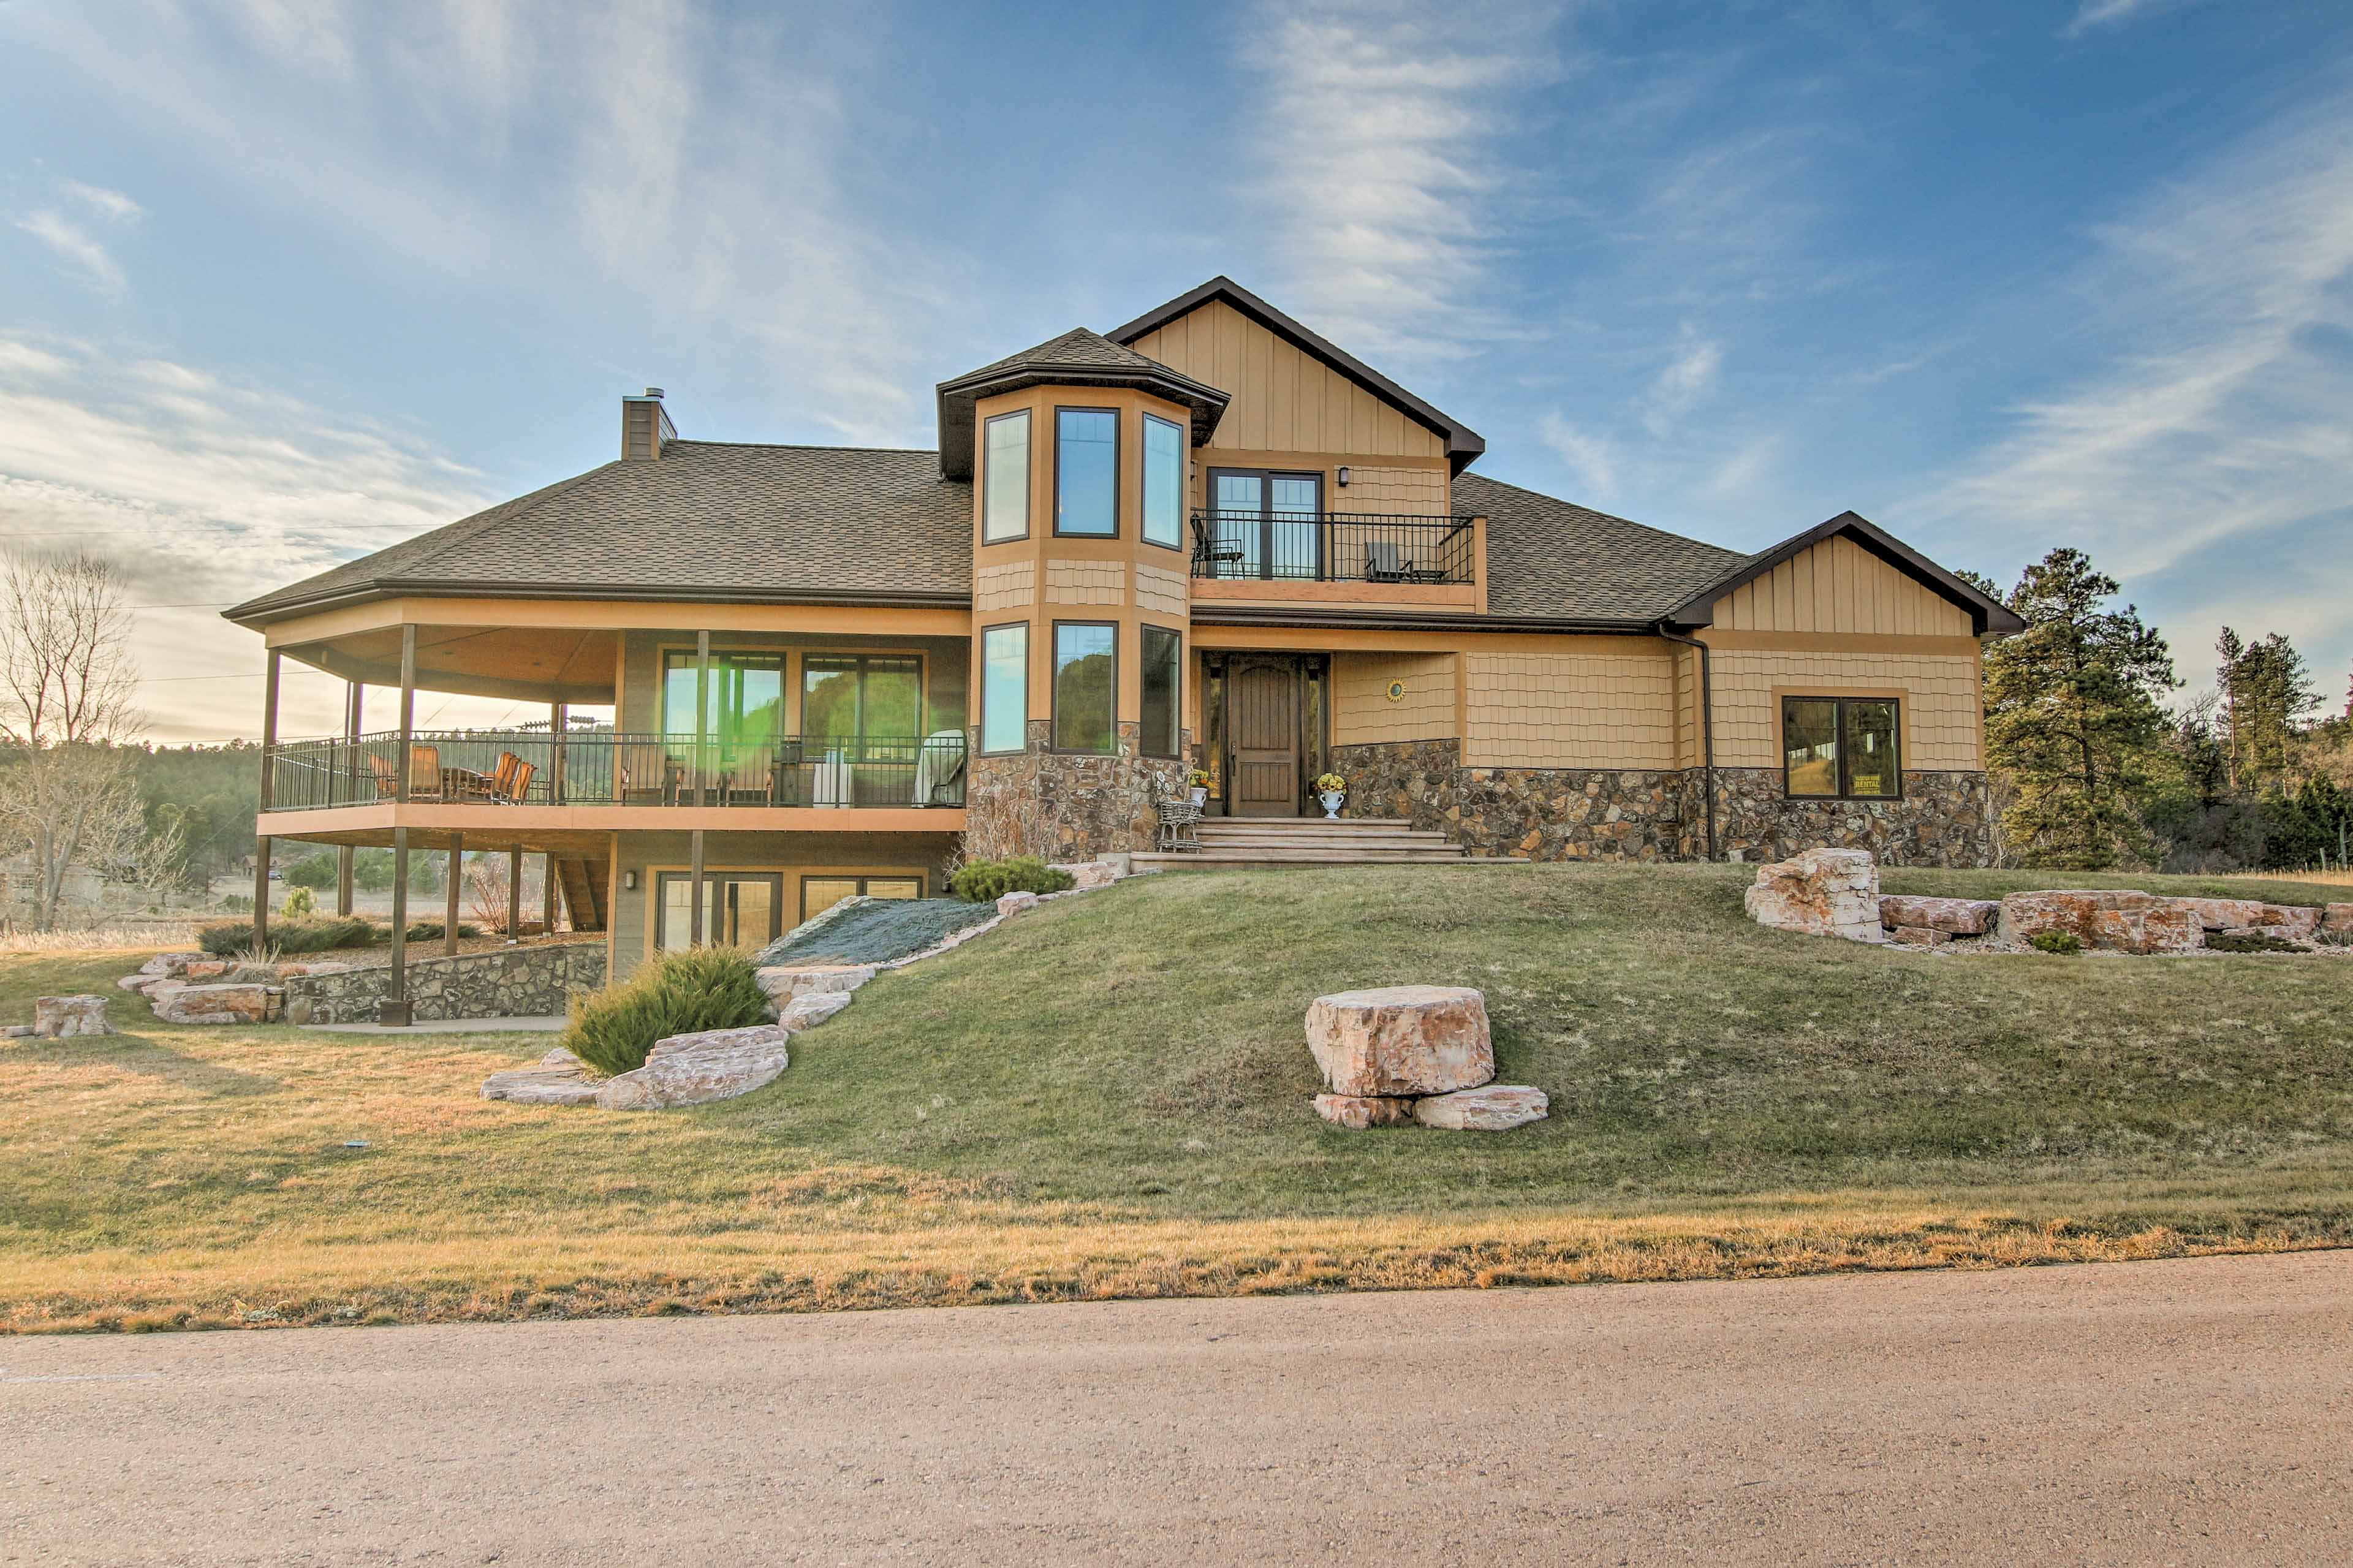 Take a trip to Sturgis at this vacation rental home just outside of the city!